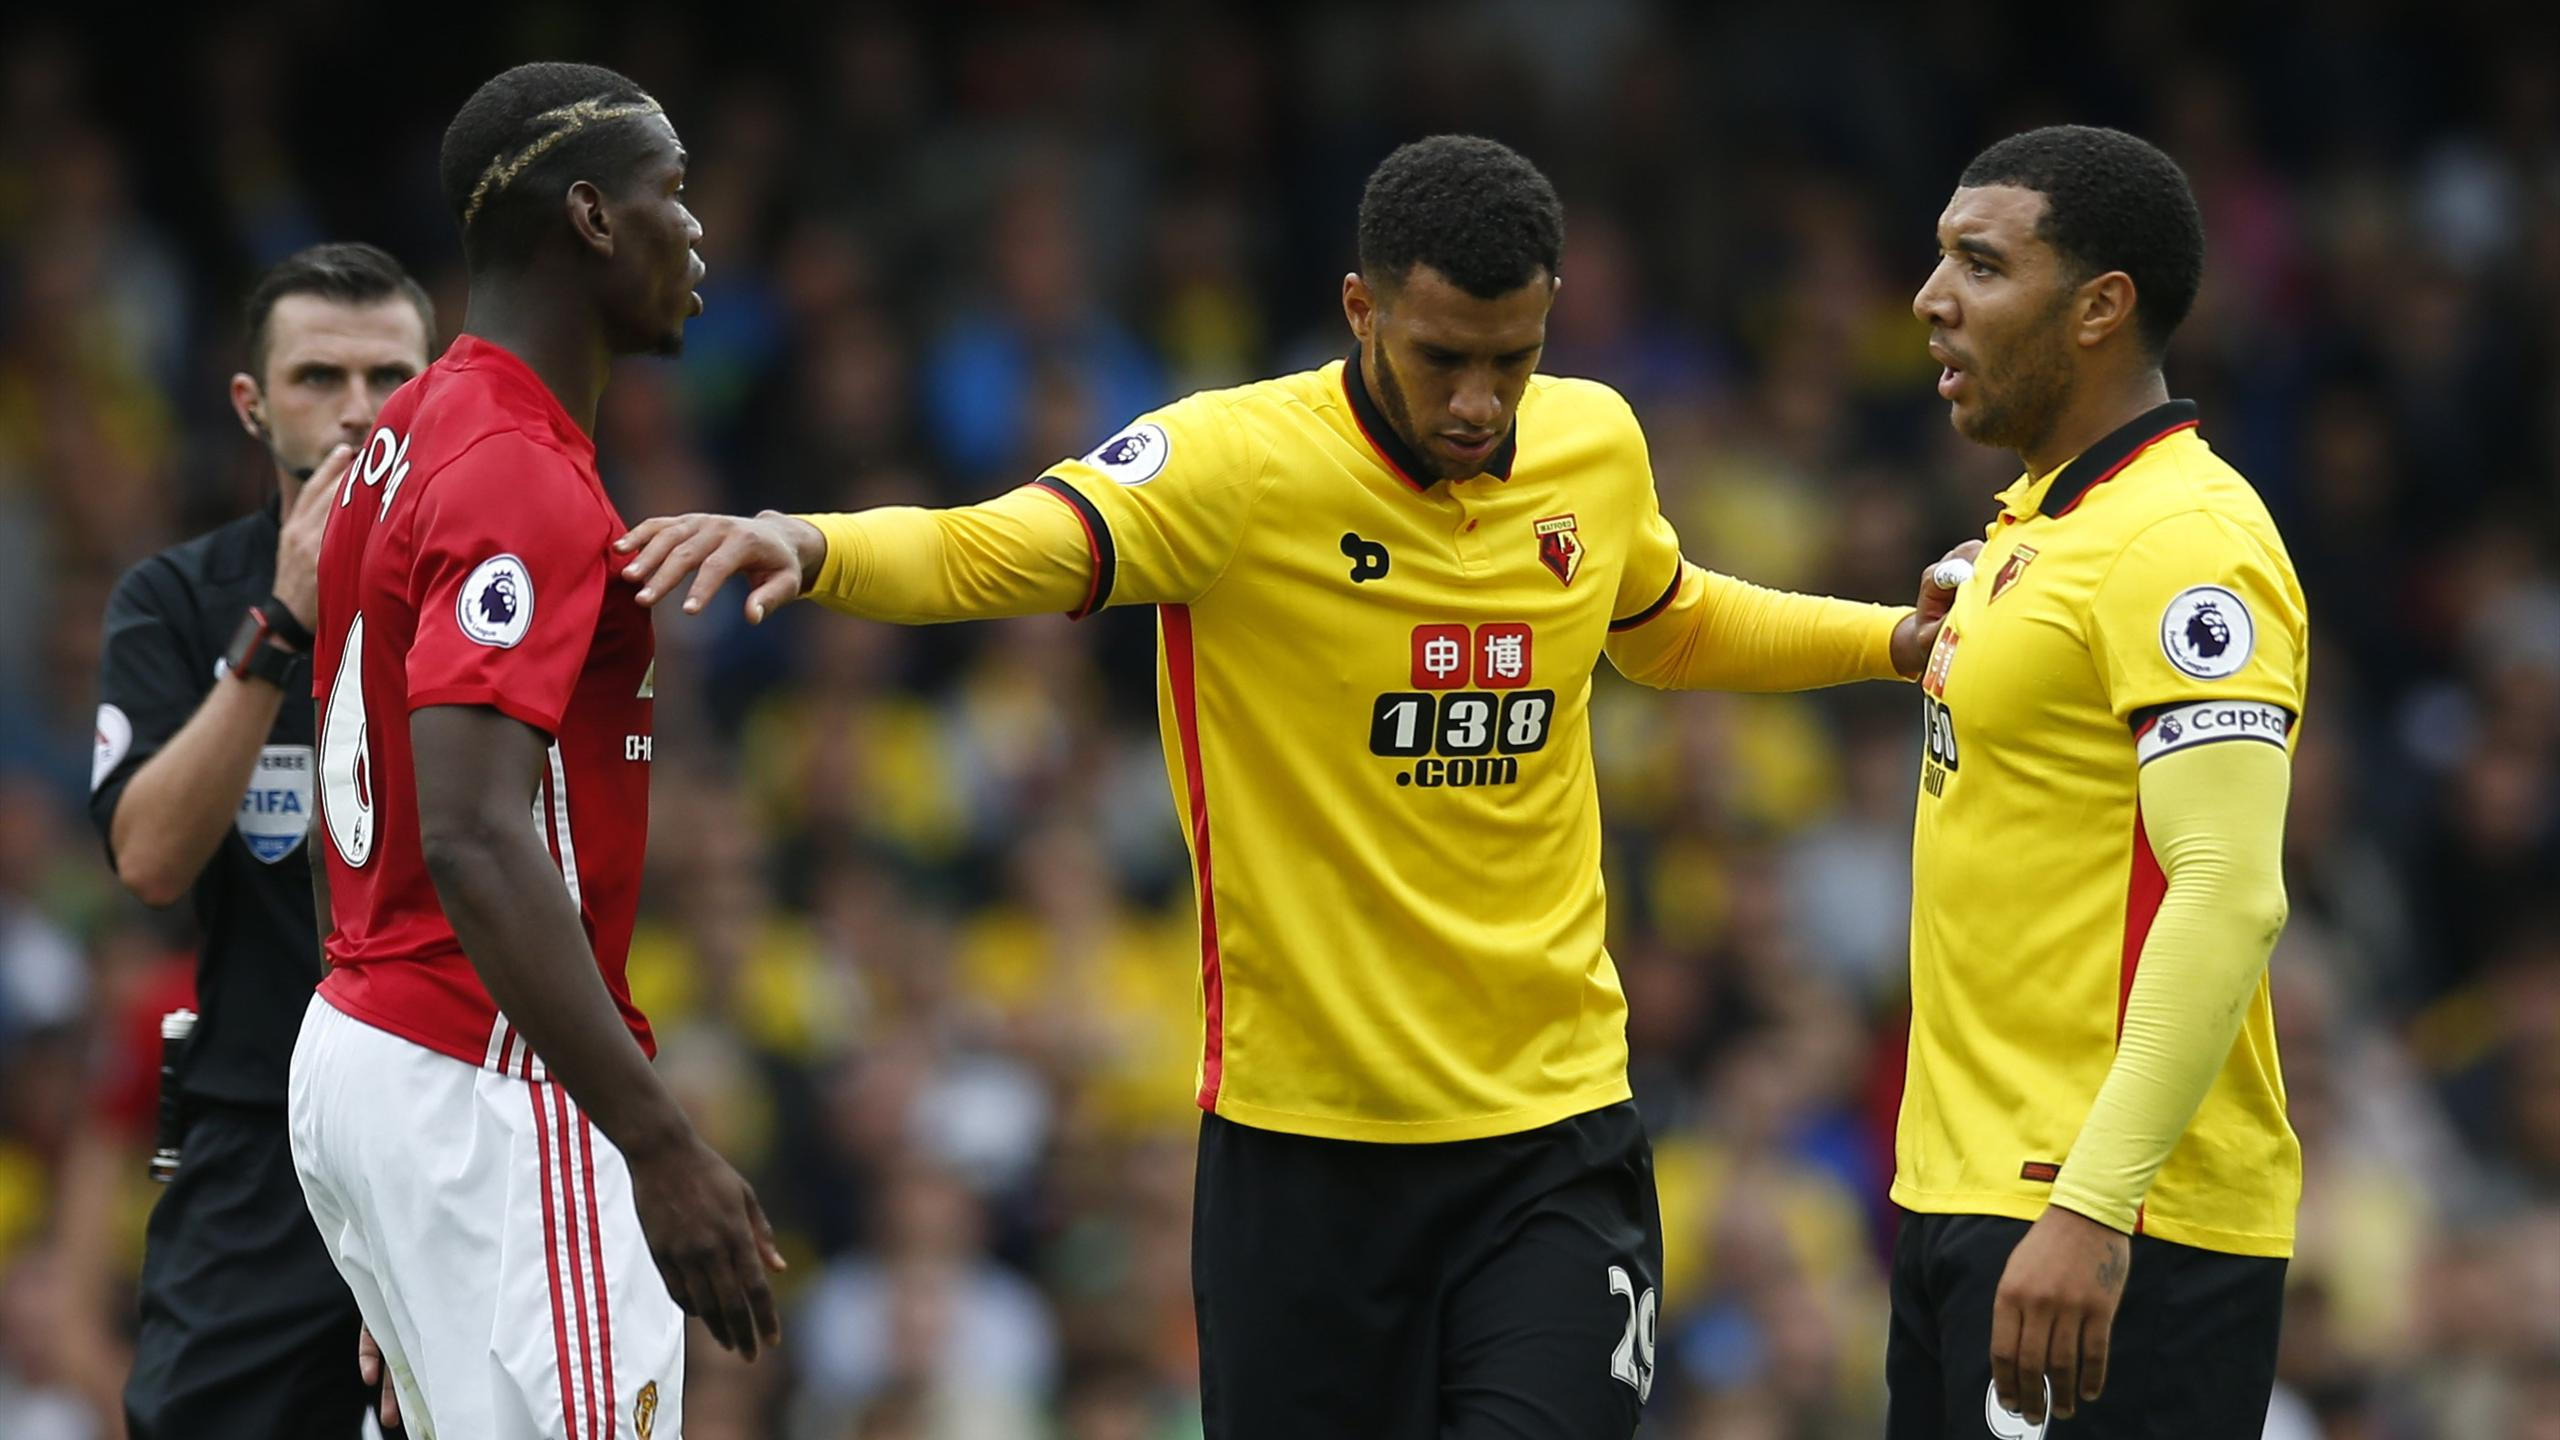 Manchester United's Paul Pogba clashes with Watford's Troy Deeney as Etienne Capoue interjects